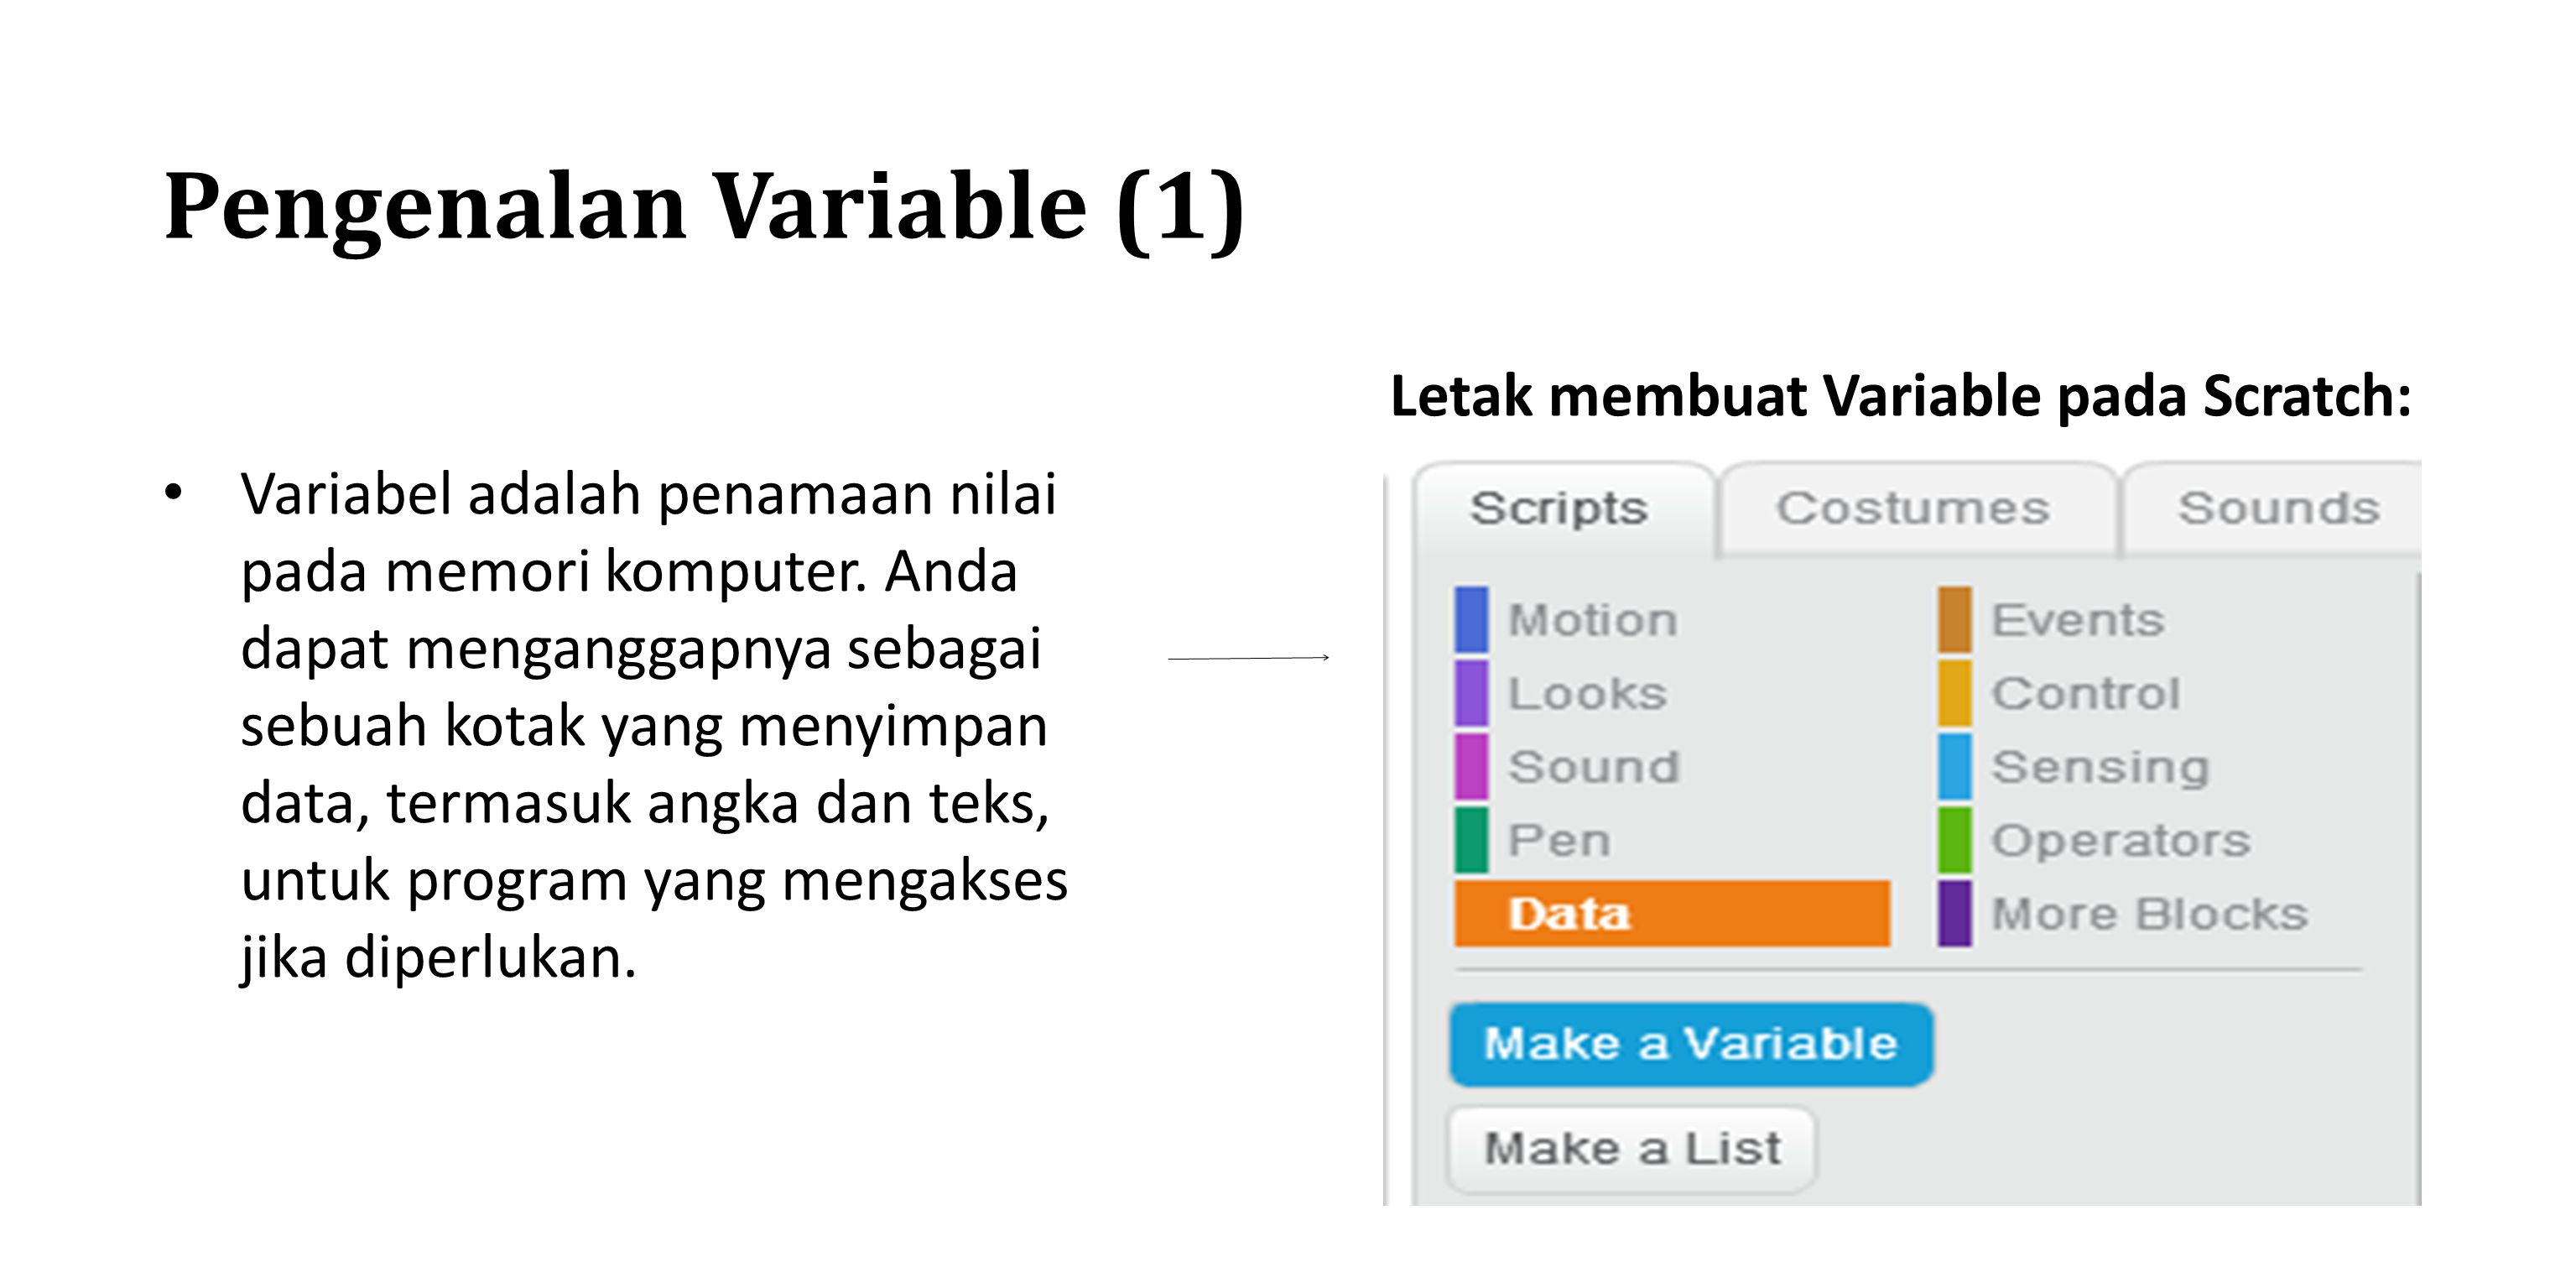 Pengenalan Variable (1)